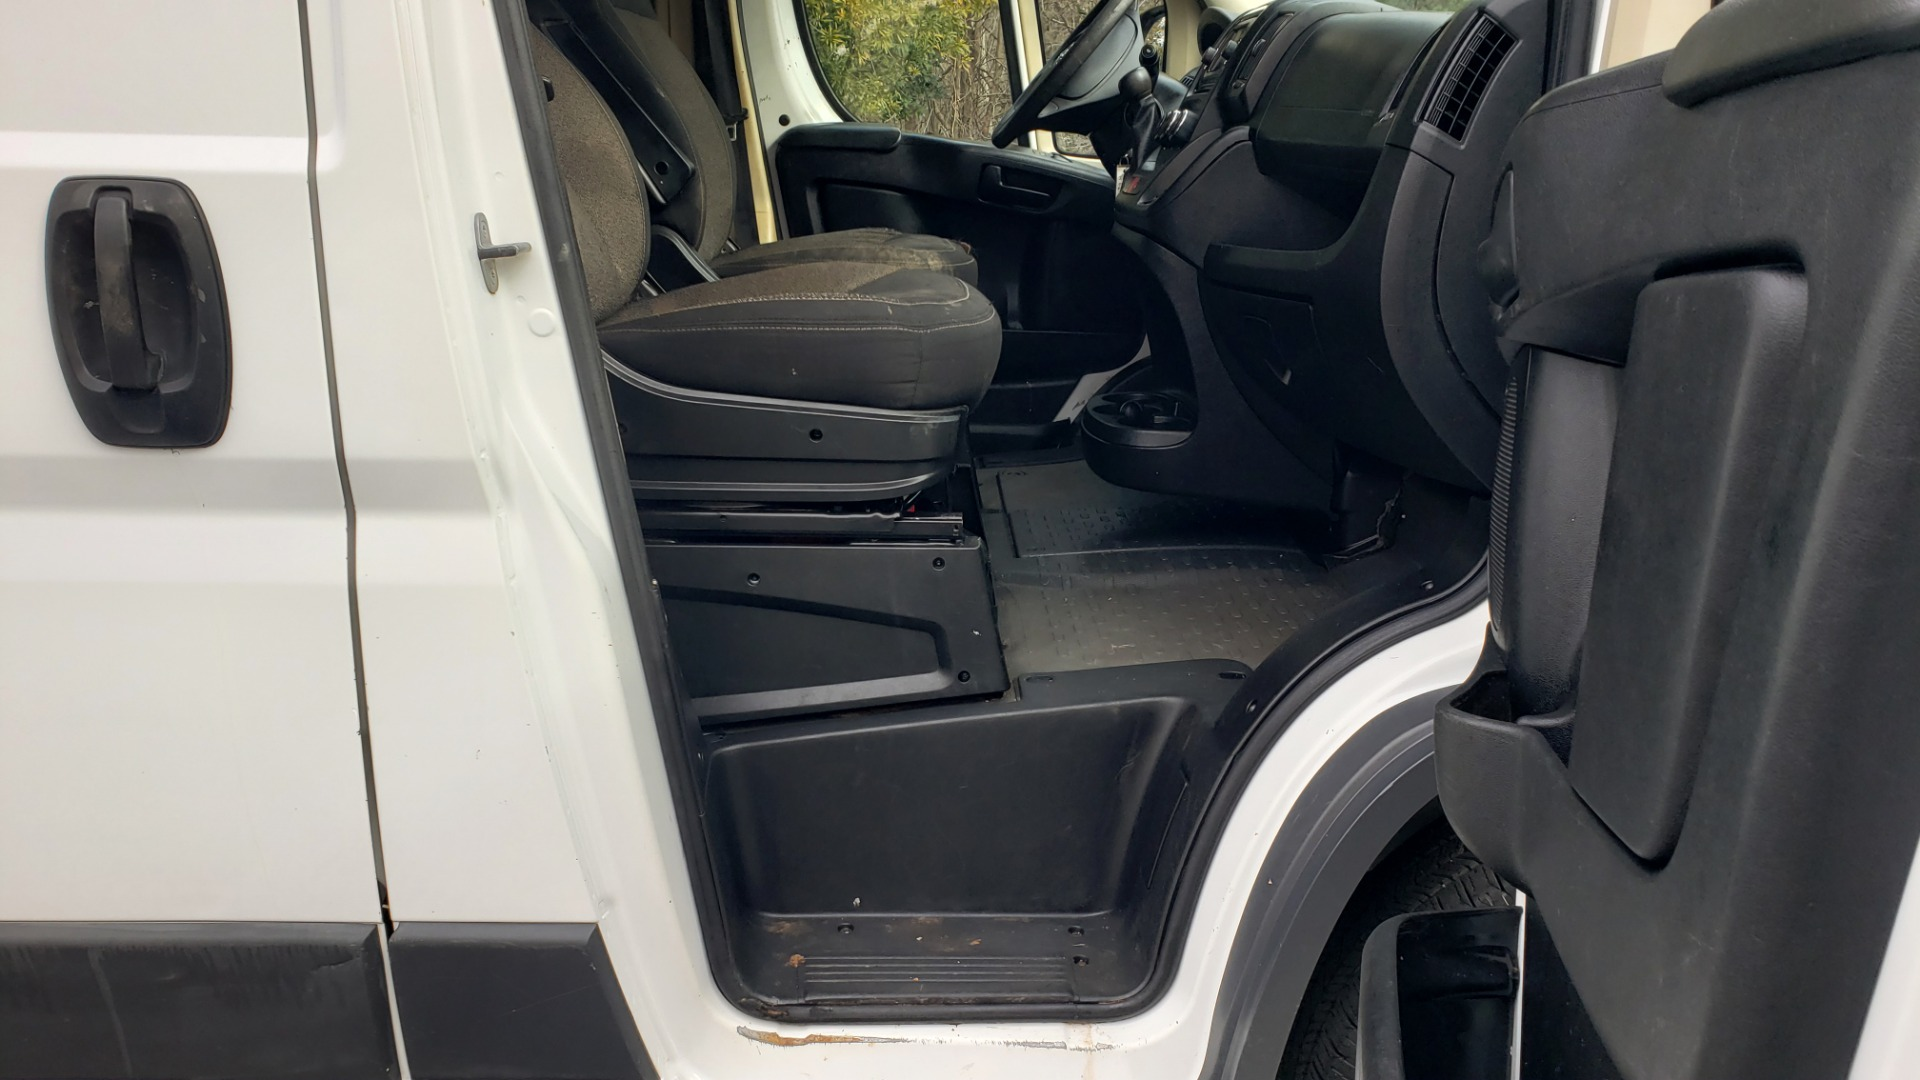 Used 2016 Ram PROMASTER CARGO VAN 136 WB / LOW ROOF / 3.6L V6 / 6-SPD AUTO / REARVIEW for sale $17,500 at Formula Imports in Charlotte NC 28227 37